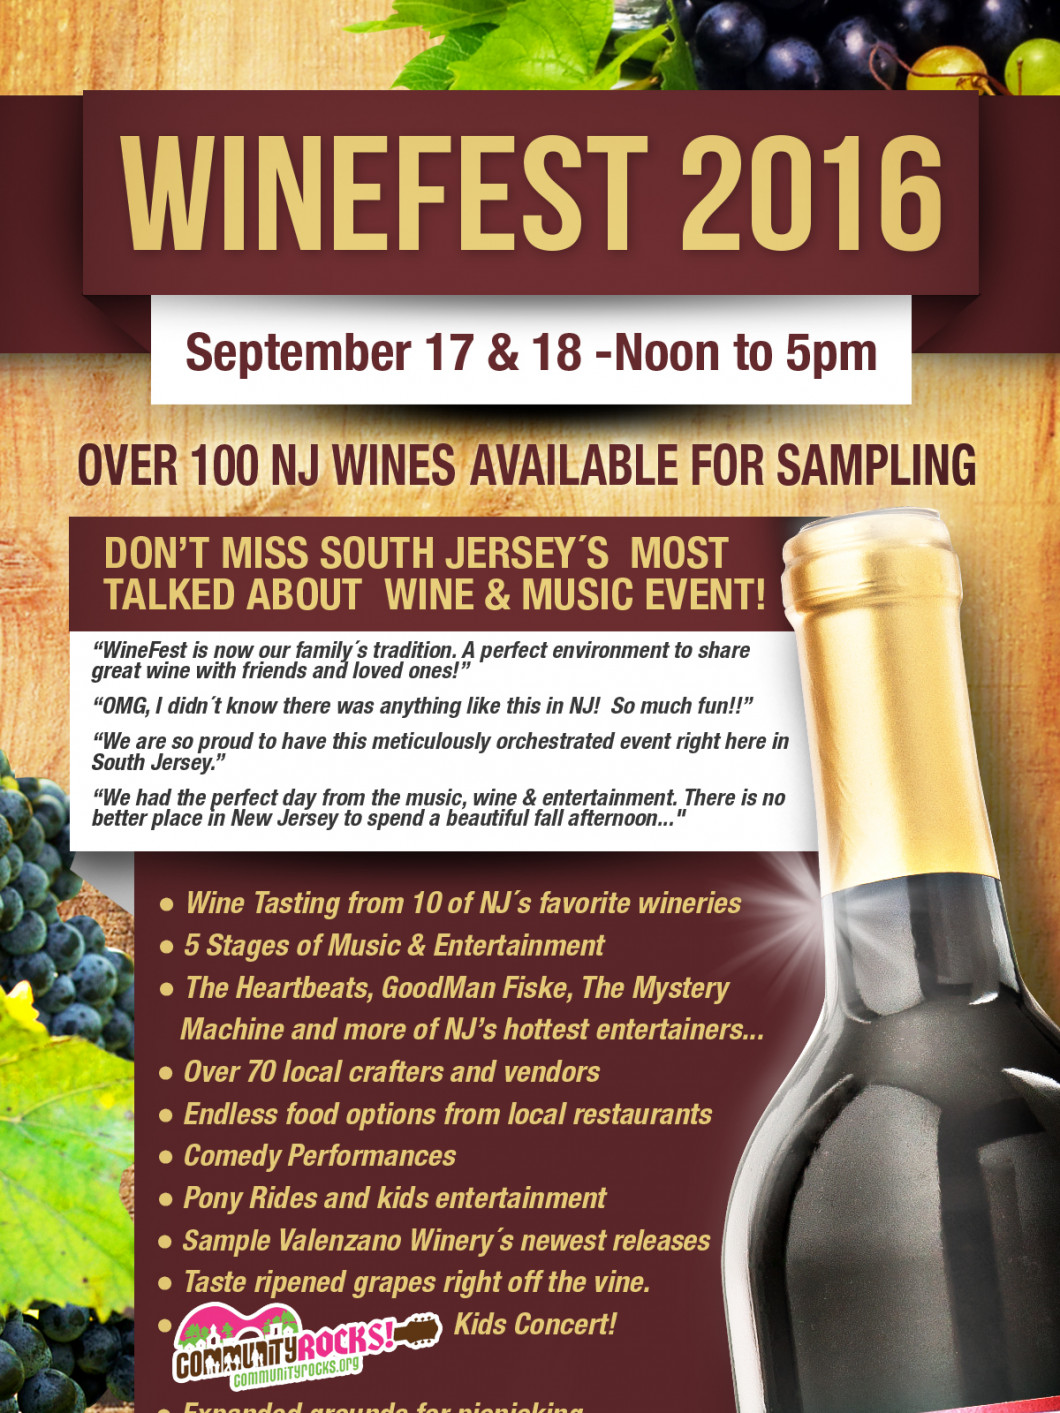 The Valenzano Winefest 2016